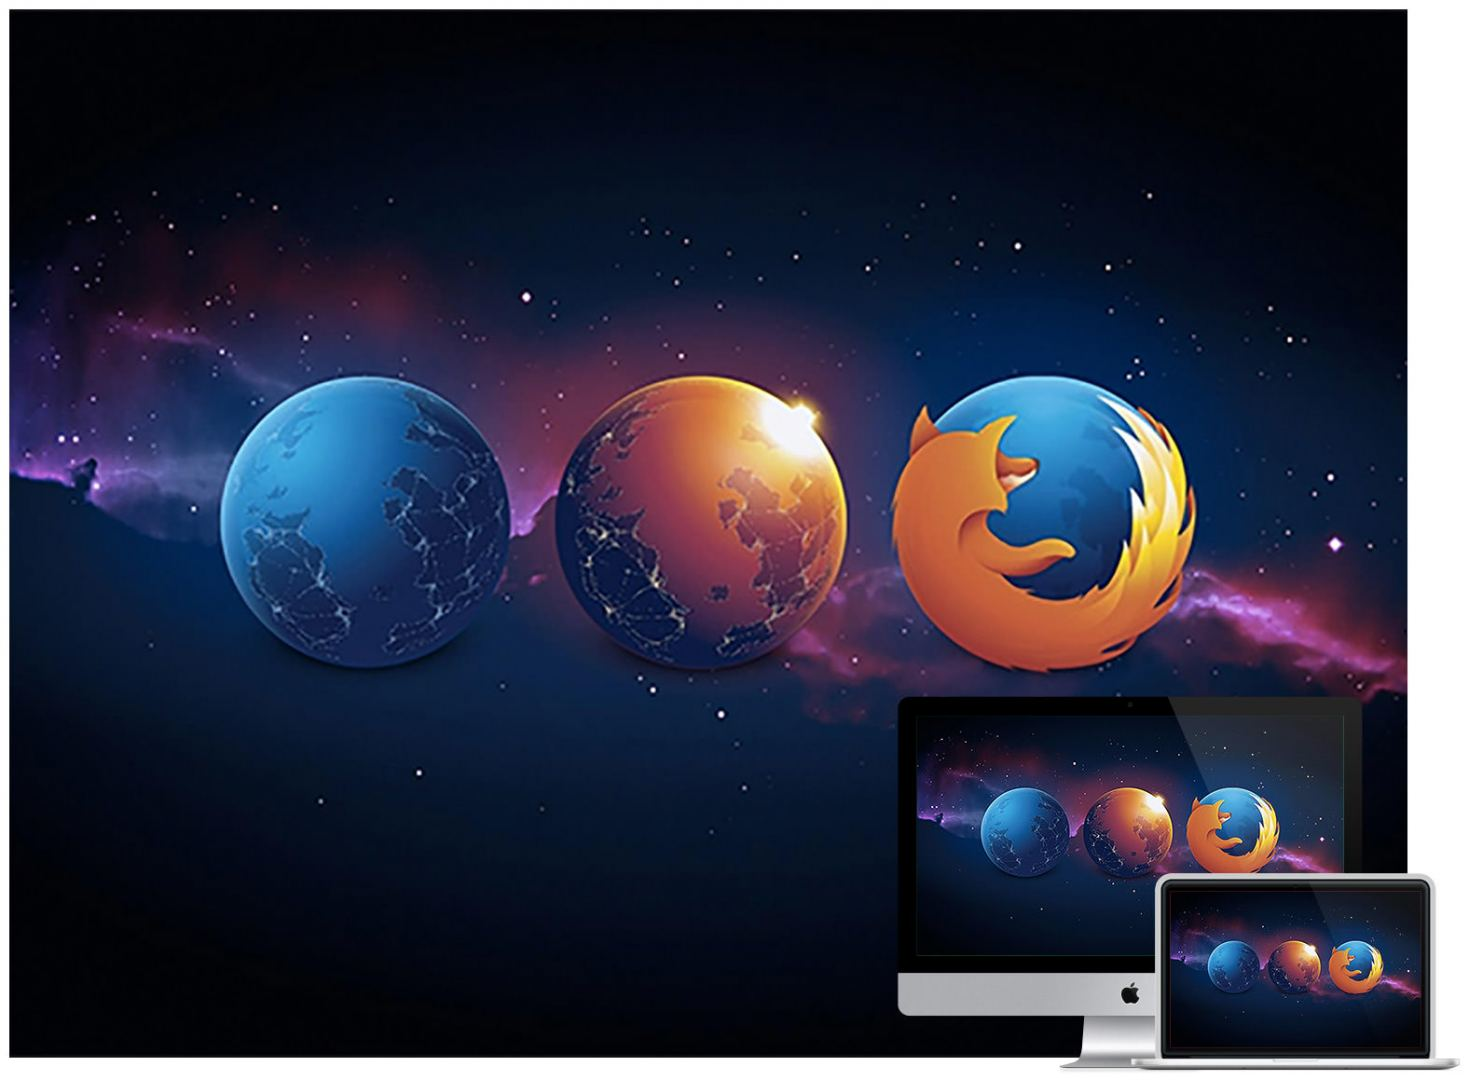 nightly-aurora-firefox-wallpaper